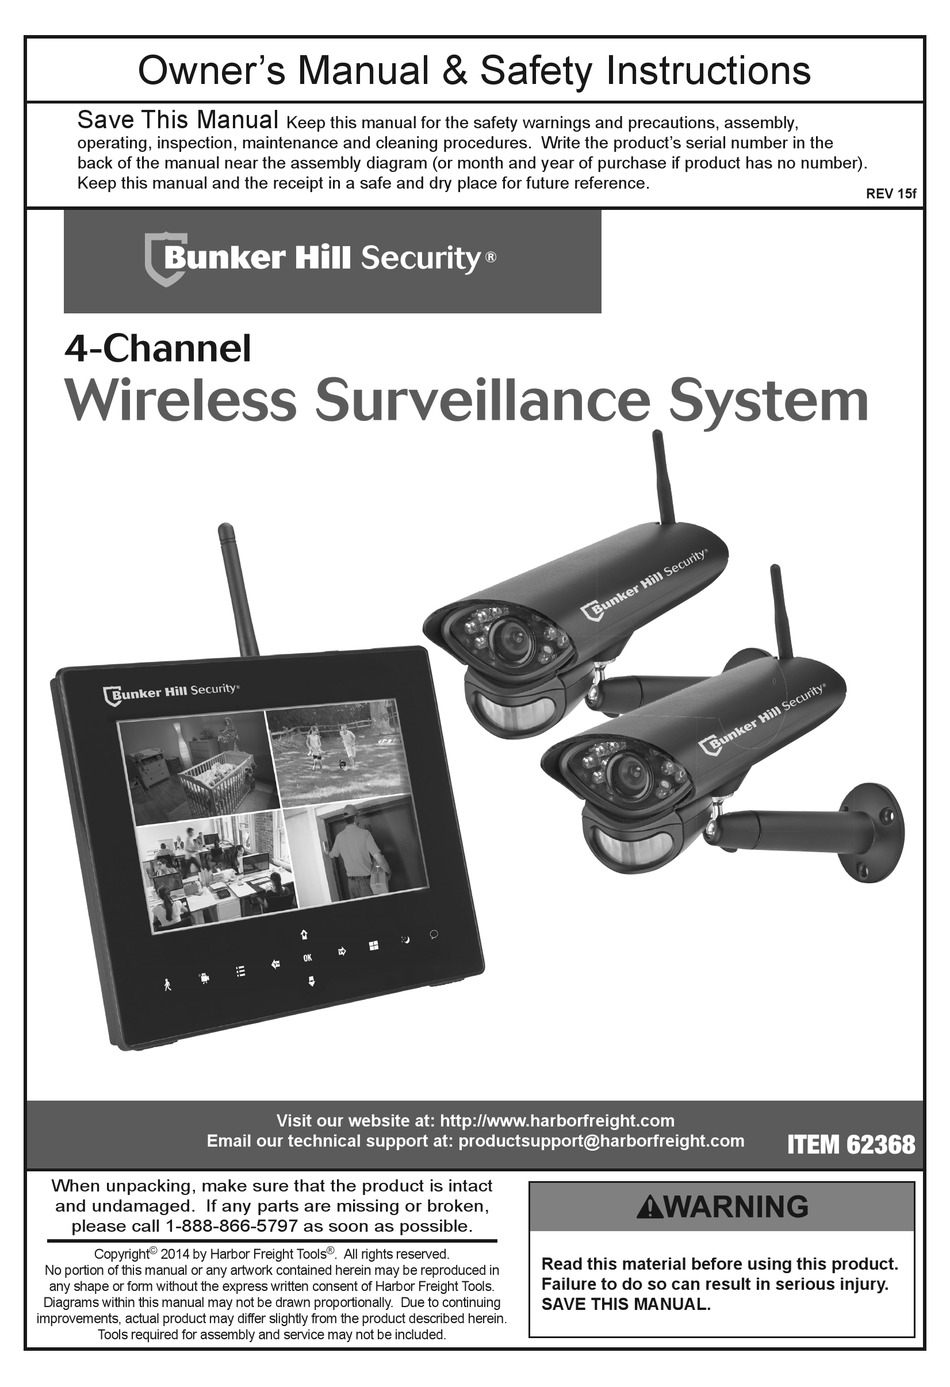 Bunker Hill Security 63129 Owner's manual | Manualzz